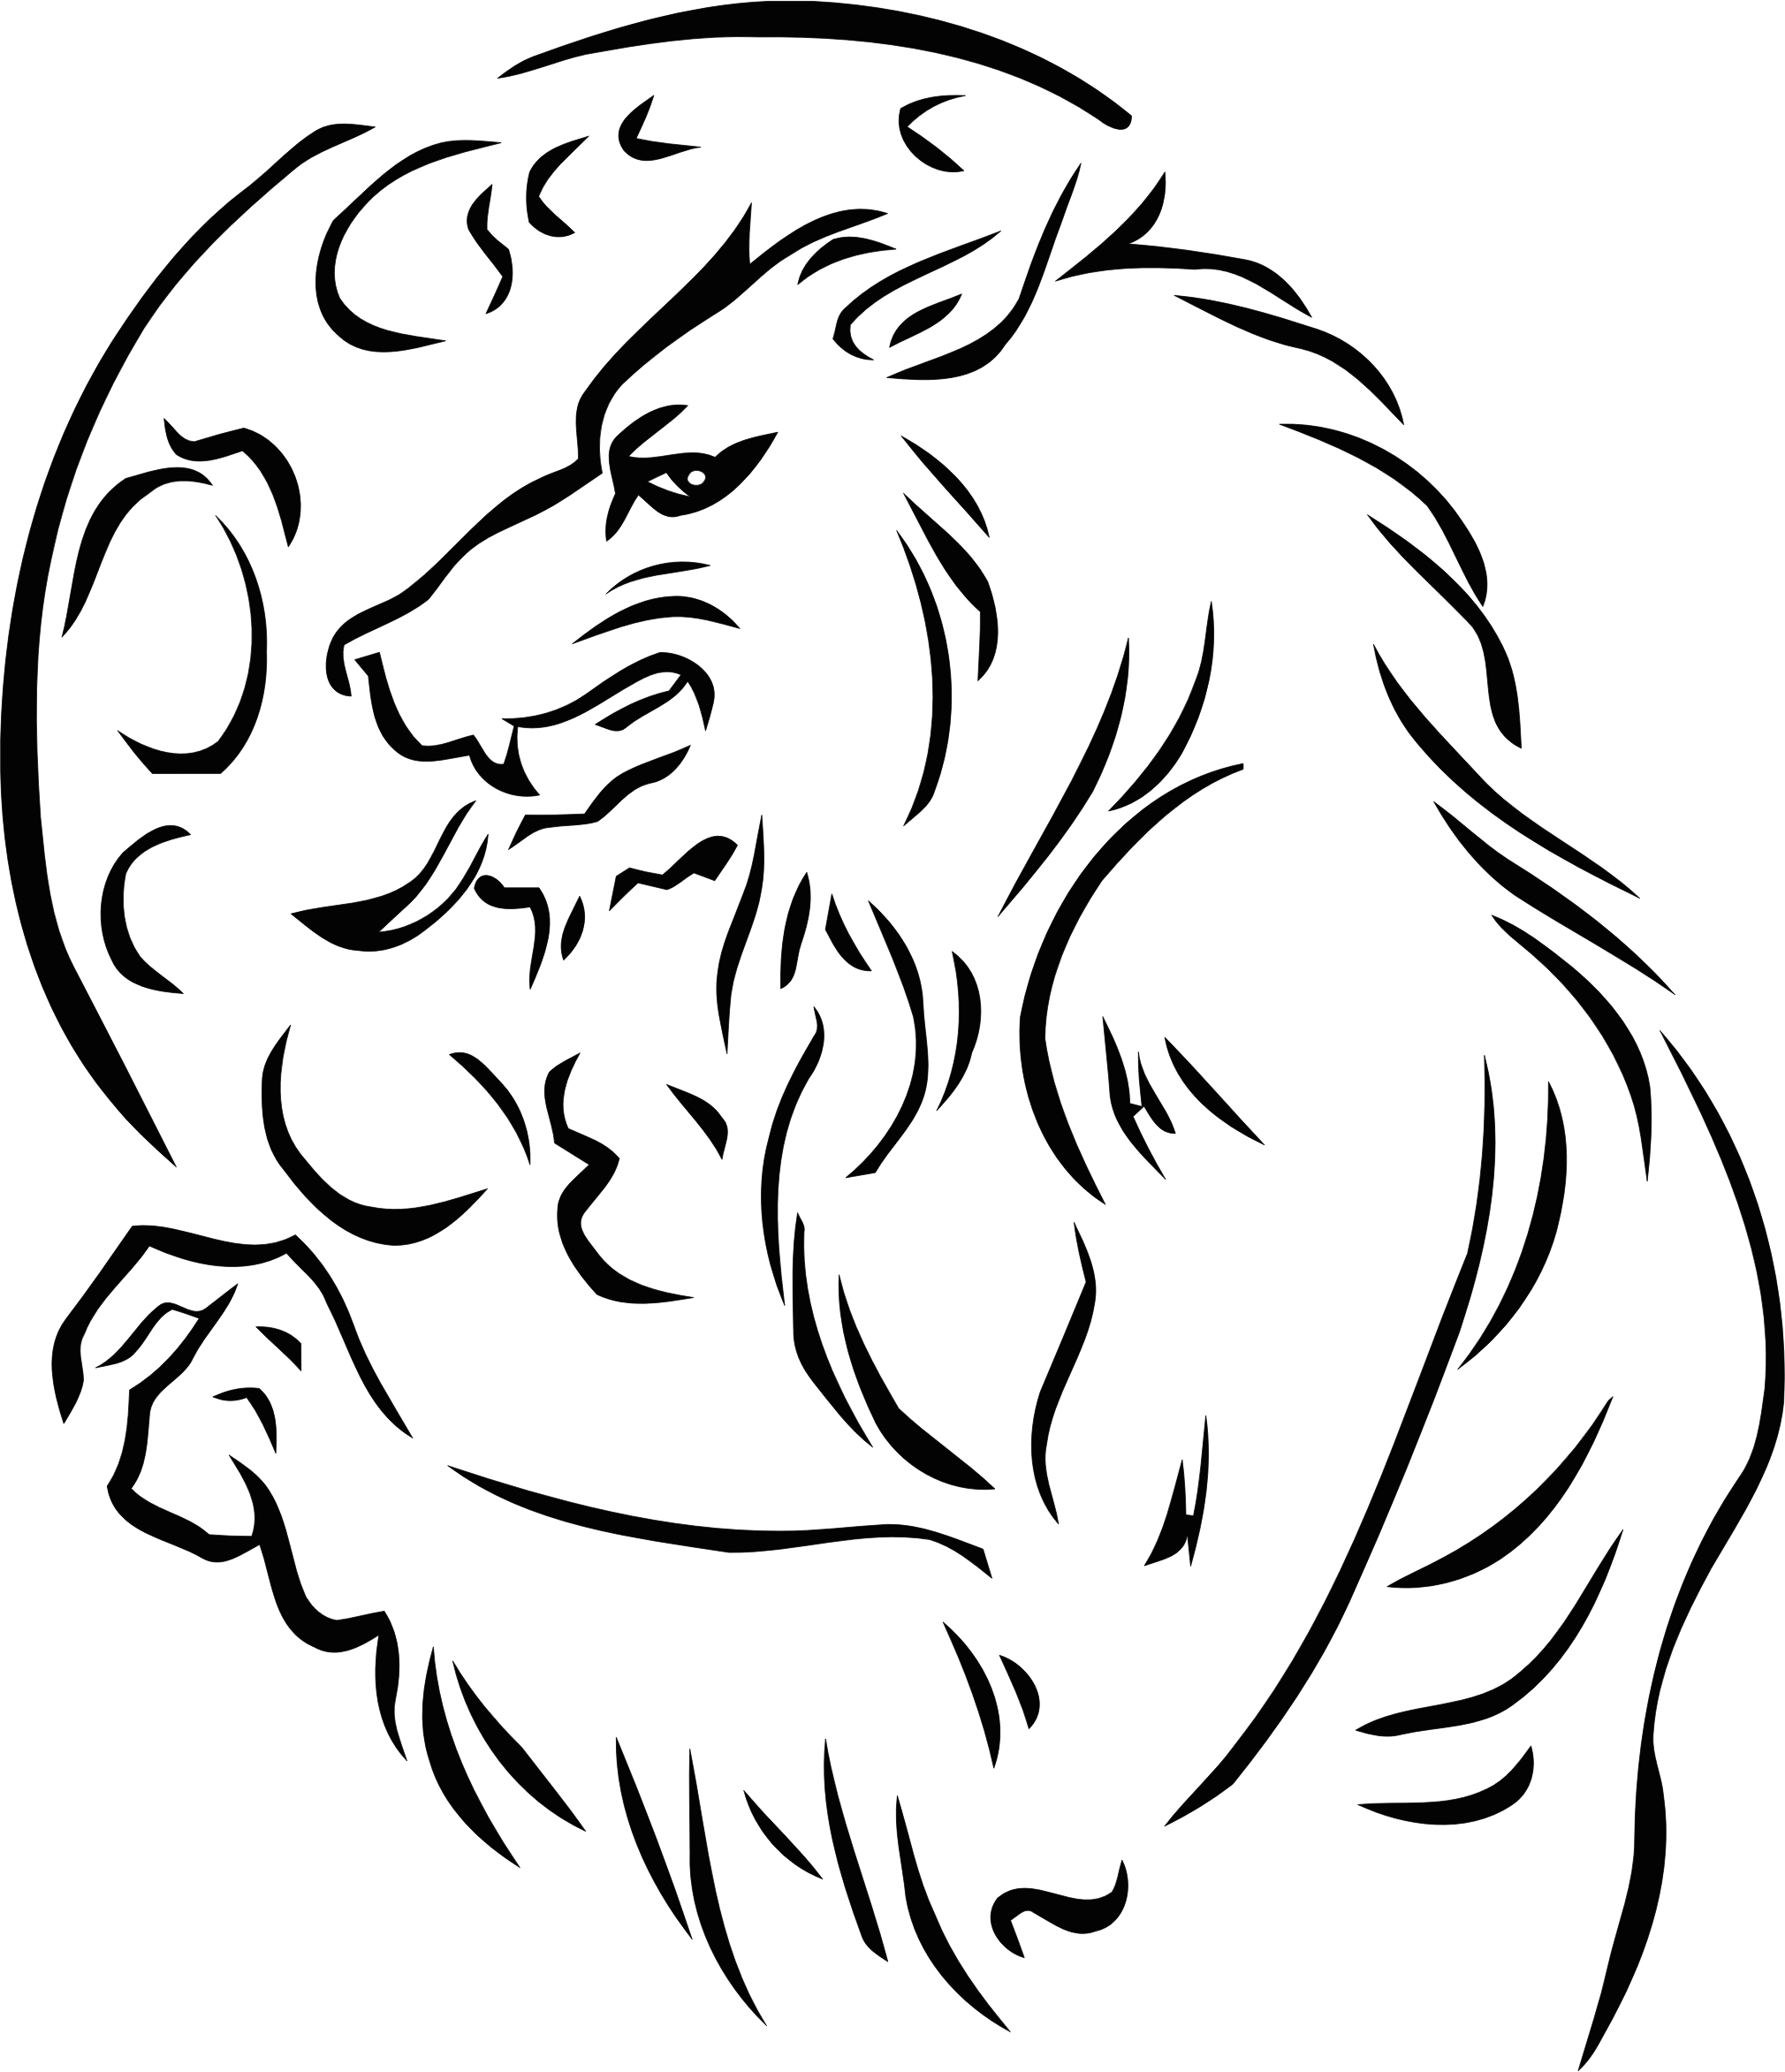 png royalty free library Clipart werewolf. Big image png